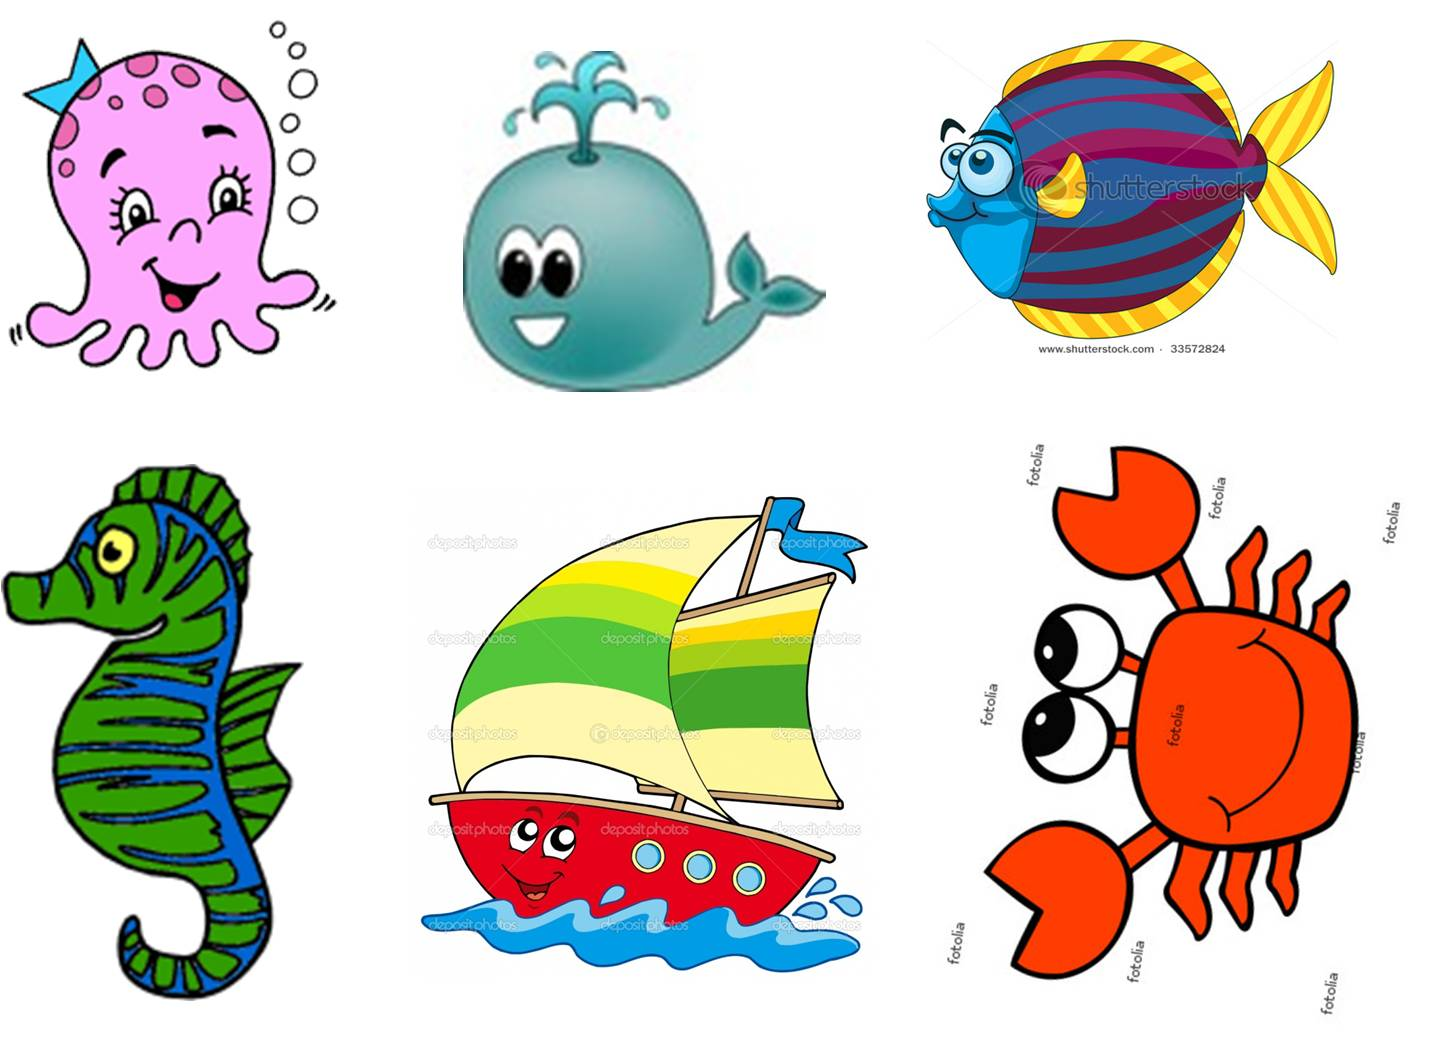 Tiny sea creatures clipart graphic royalty free My Mistyfied: Tiny Quiet Book graphic royalty free